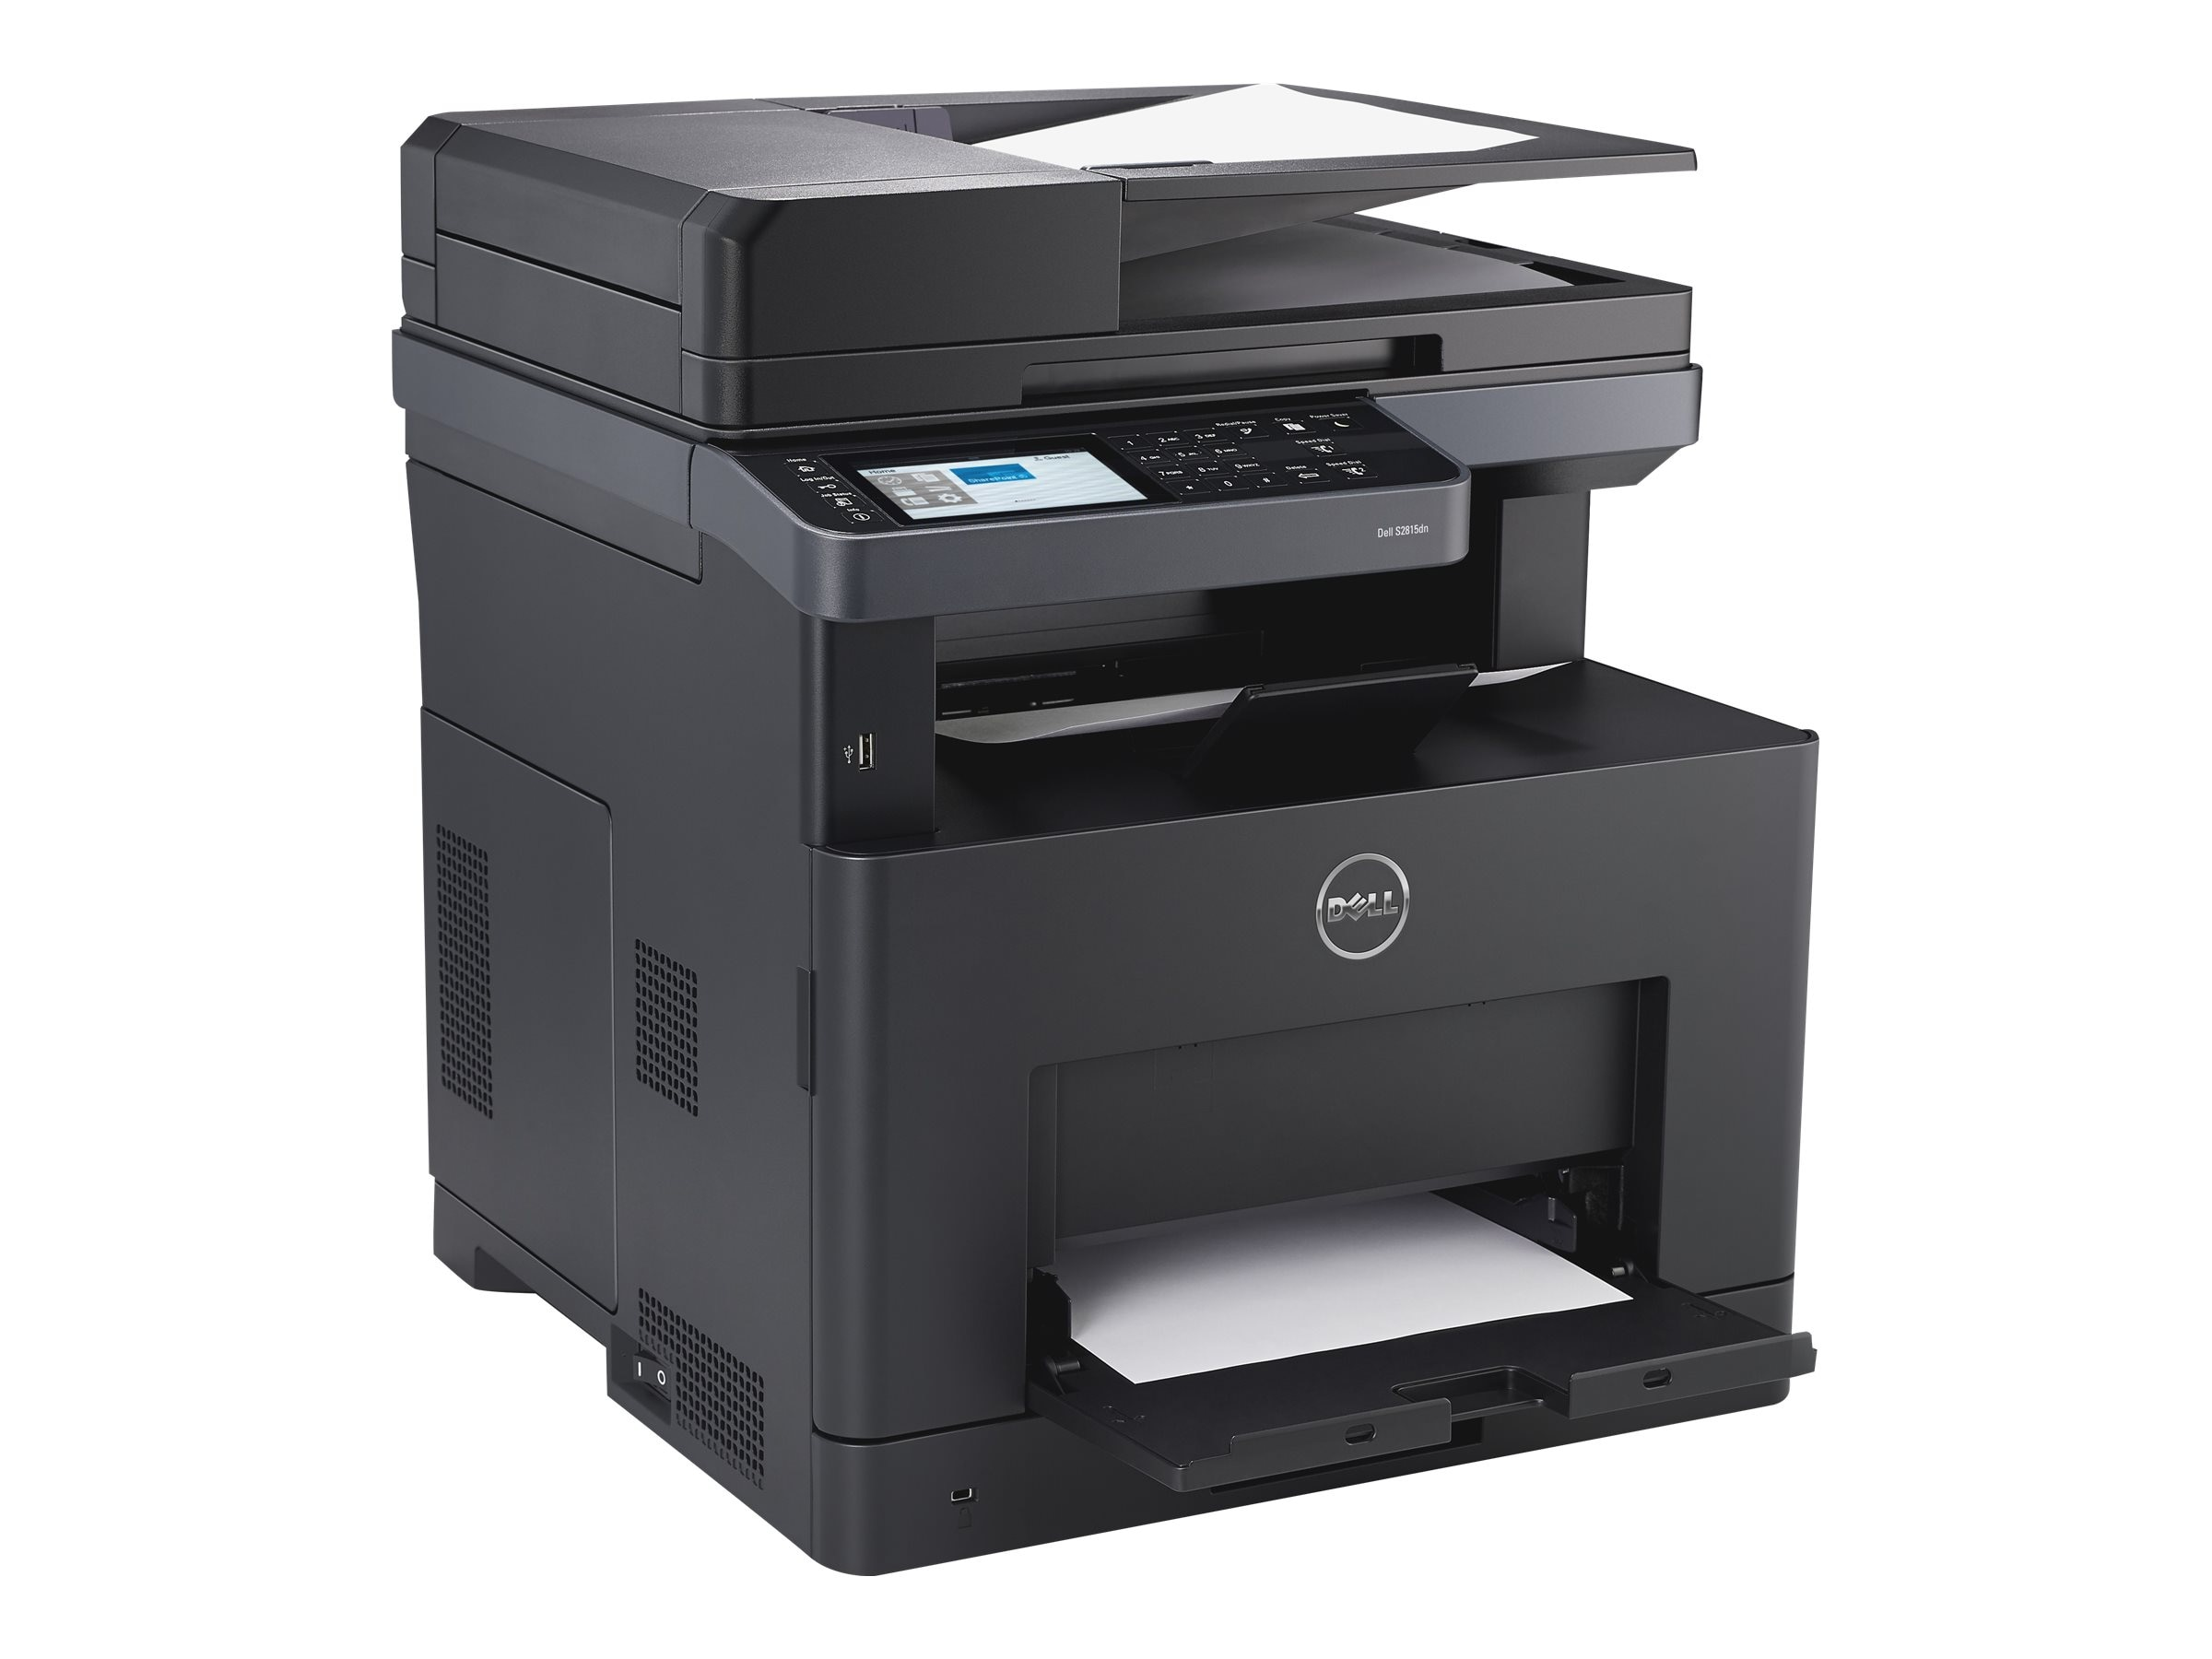 Dell Smart Multifunction Printer - S2815dn, S2815DN